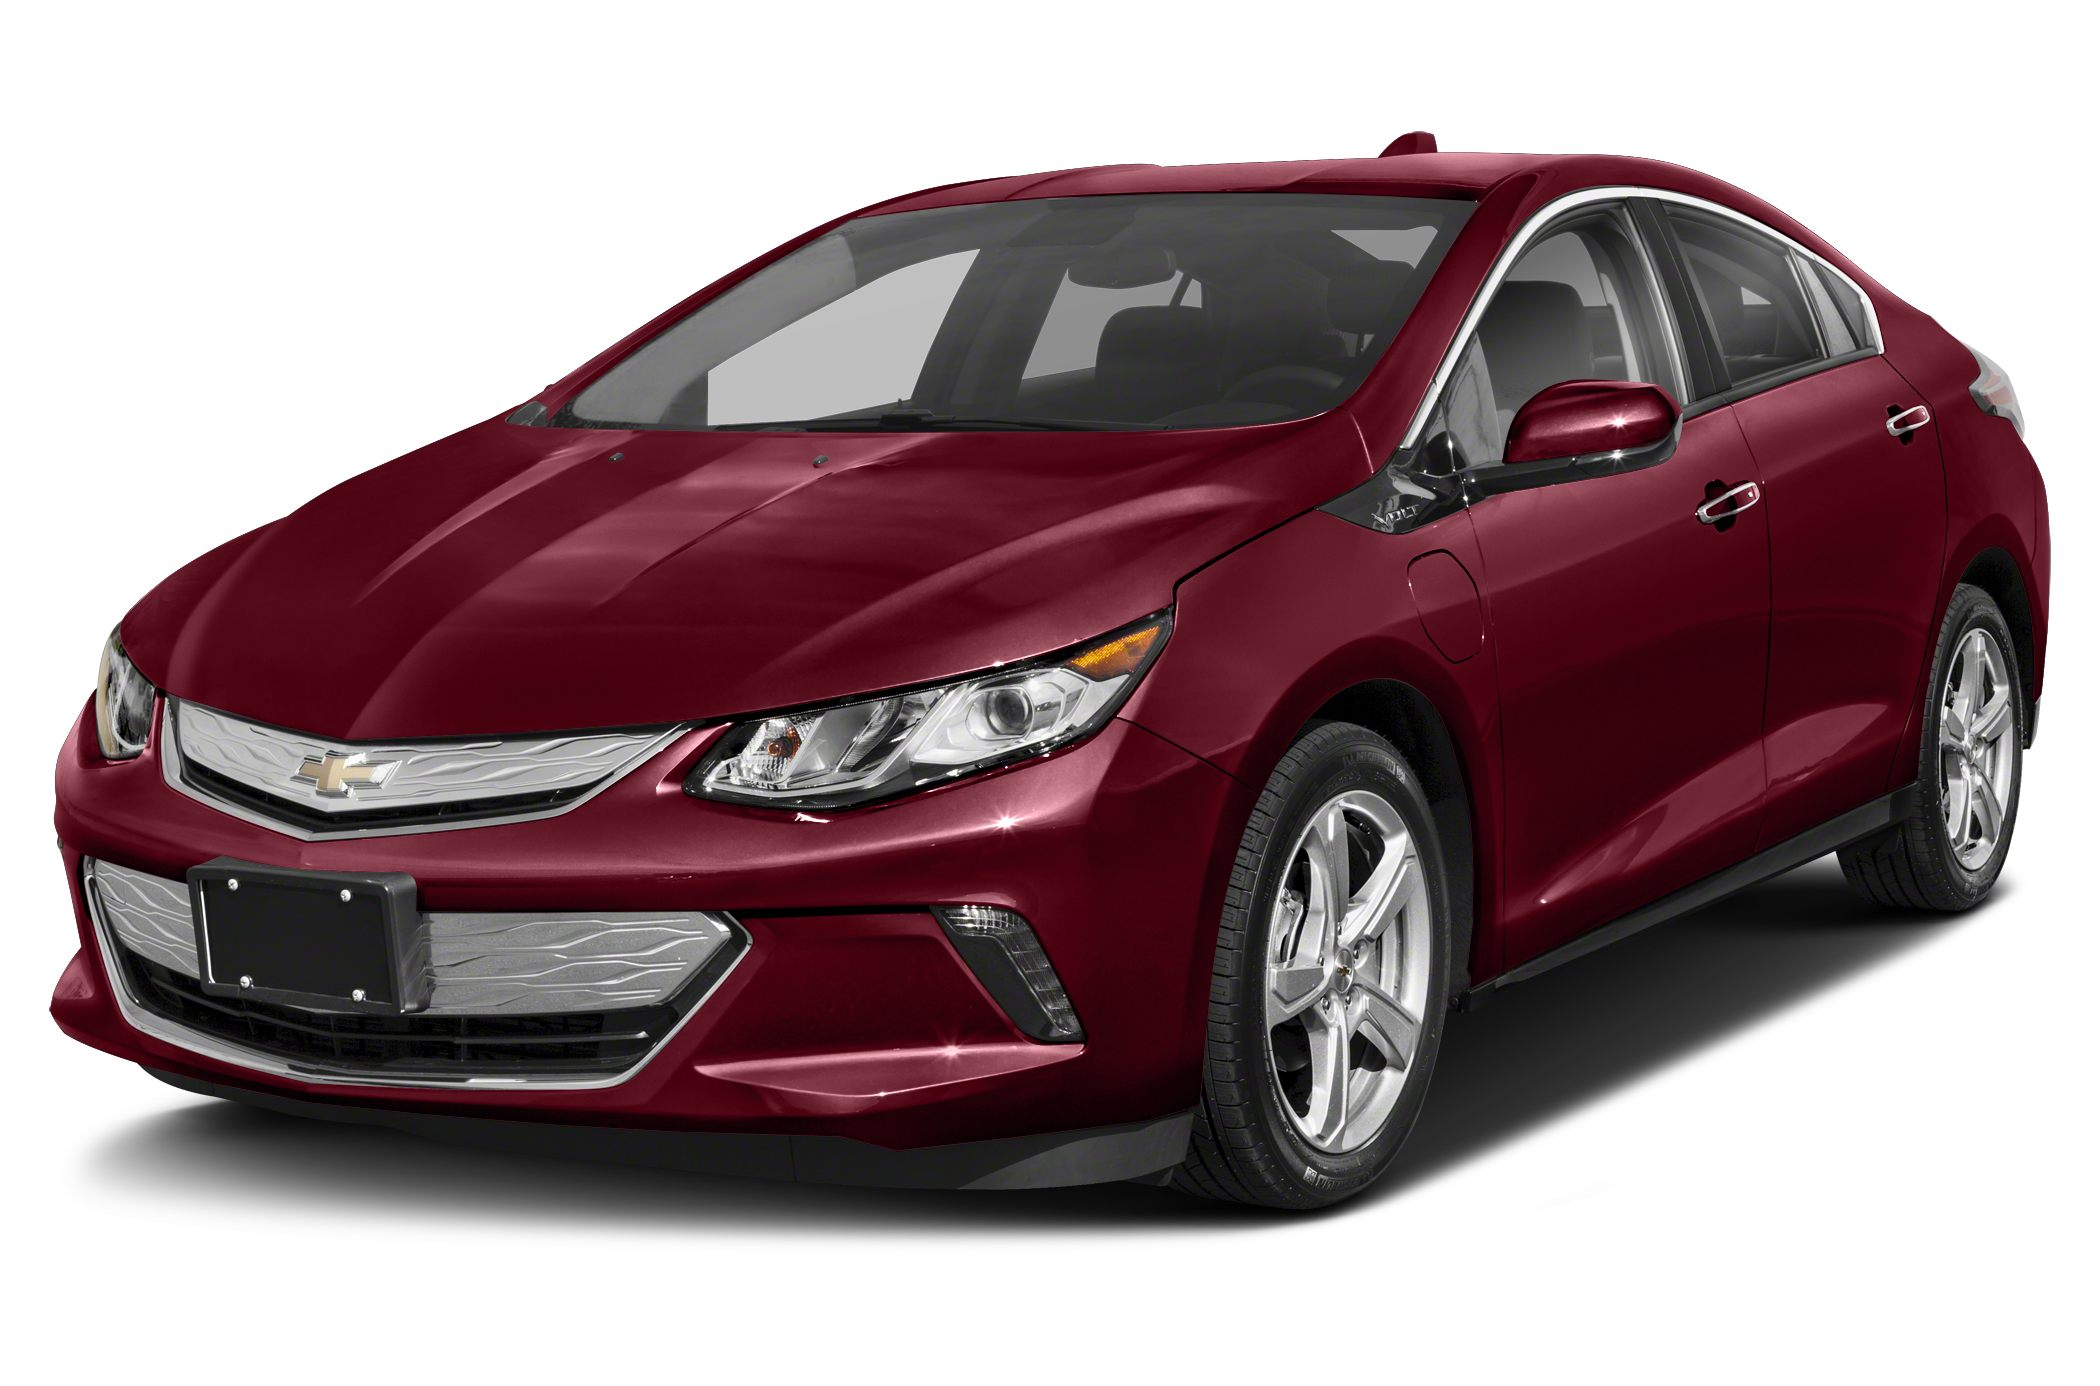 Chevrolet Volt News, Photos and Buying Information - Autoblog